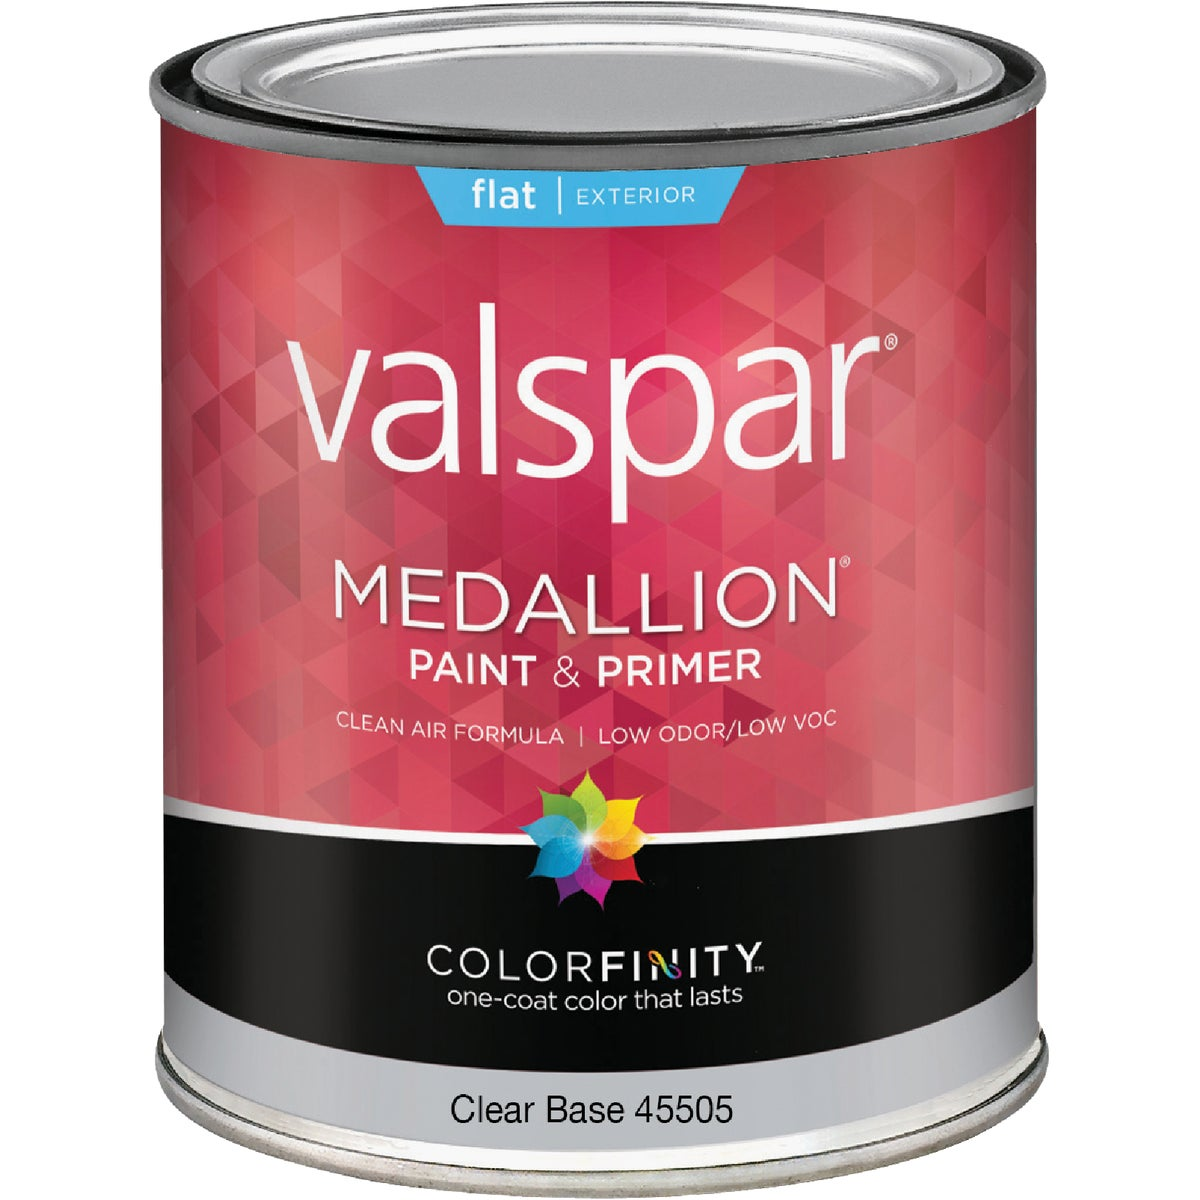 EXT FLAT CLEAR BS PAINT - 027.0045505.005 by Valspar Corp